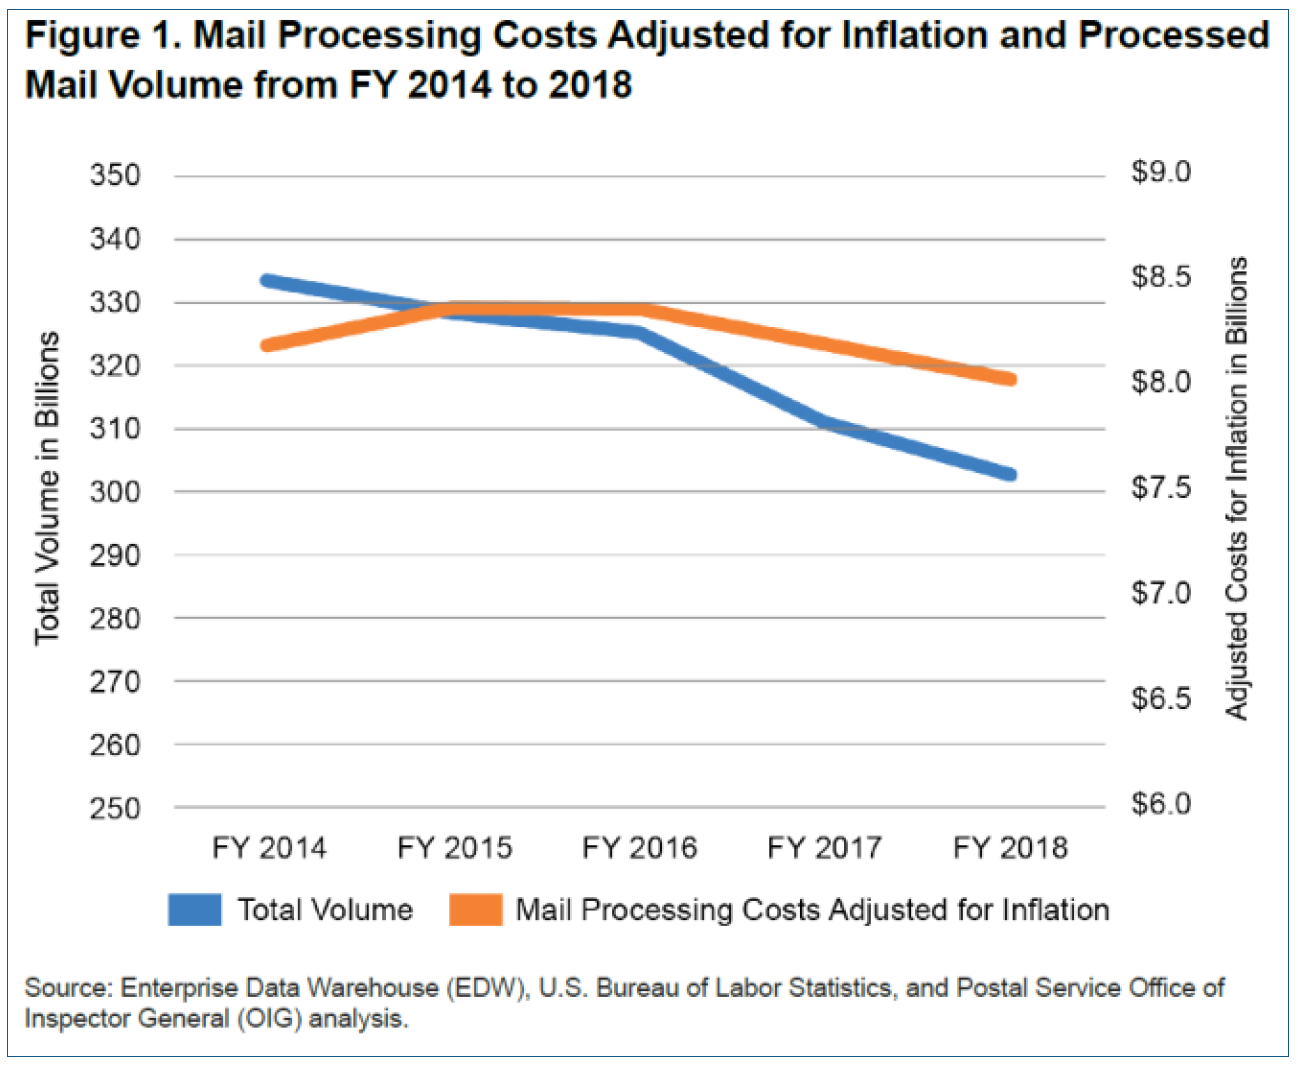 Mail Processing Costs Adjust for Inflation and Process Mail Volume FY 2014 - 2018